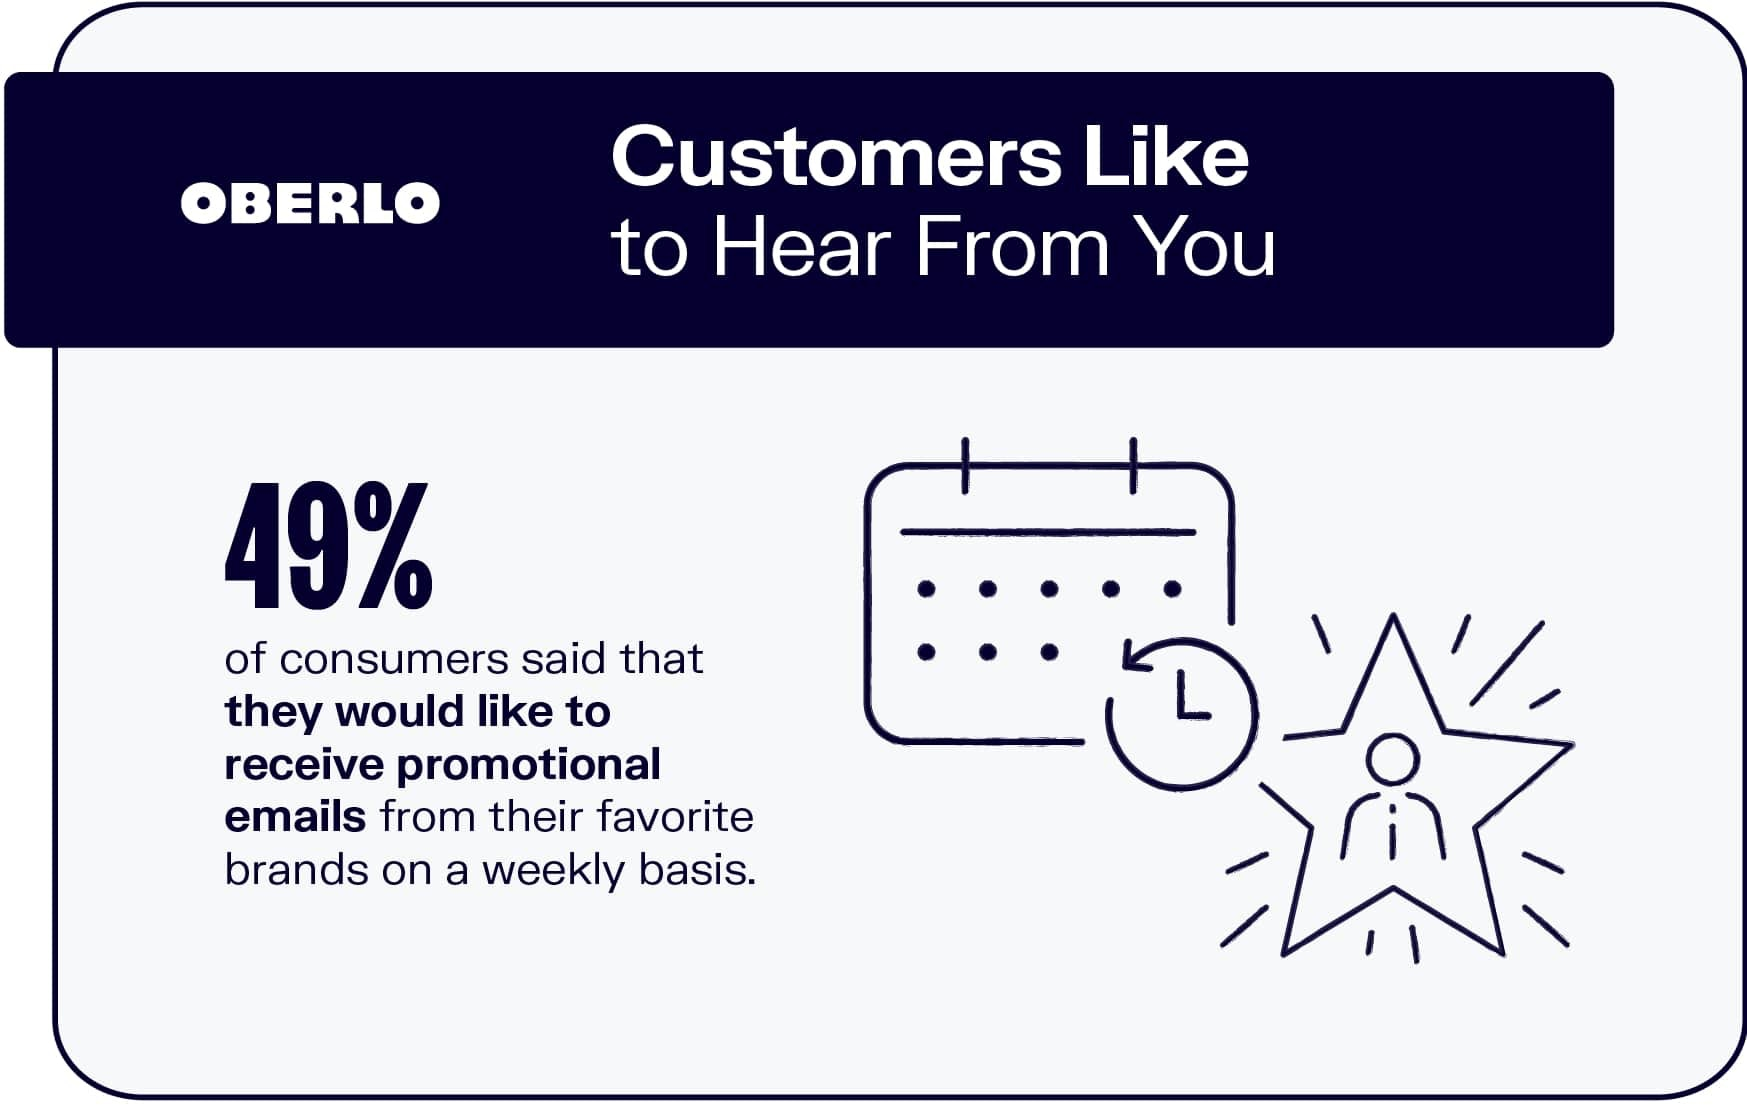 Customers Like to Hear From You